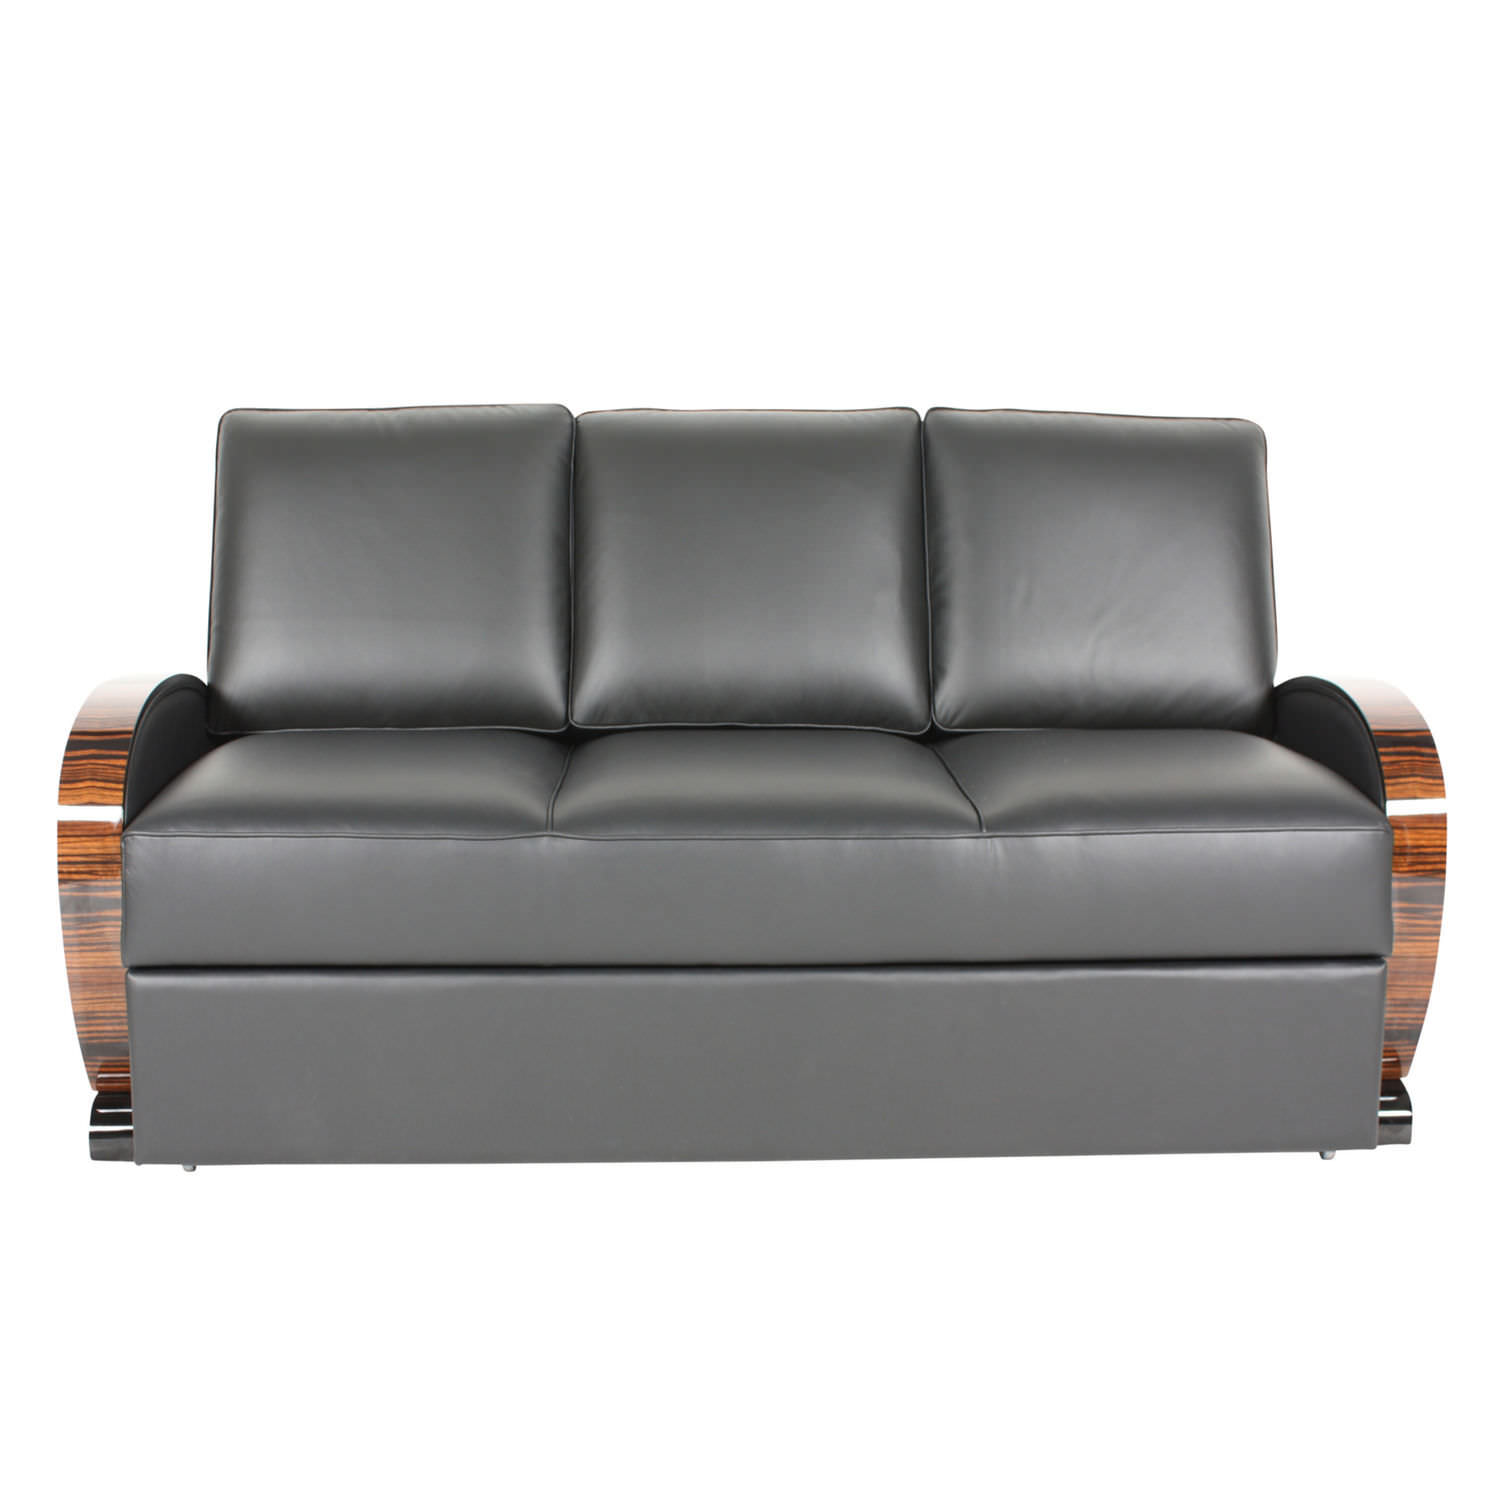 Sofa bed / Art Deco / leather / fabric - SF046 - Cygal Art Deco ...